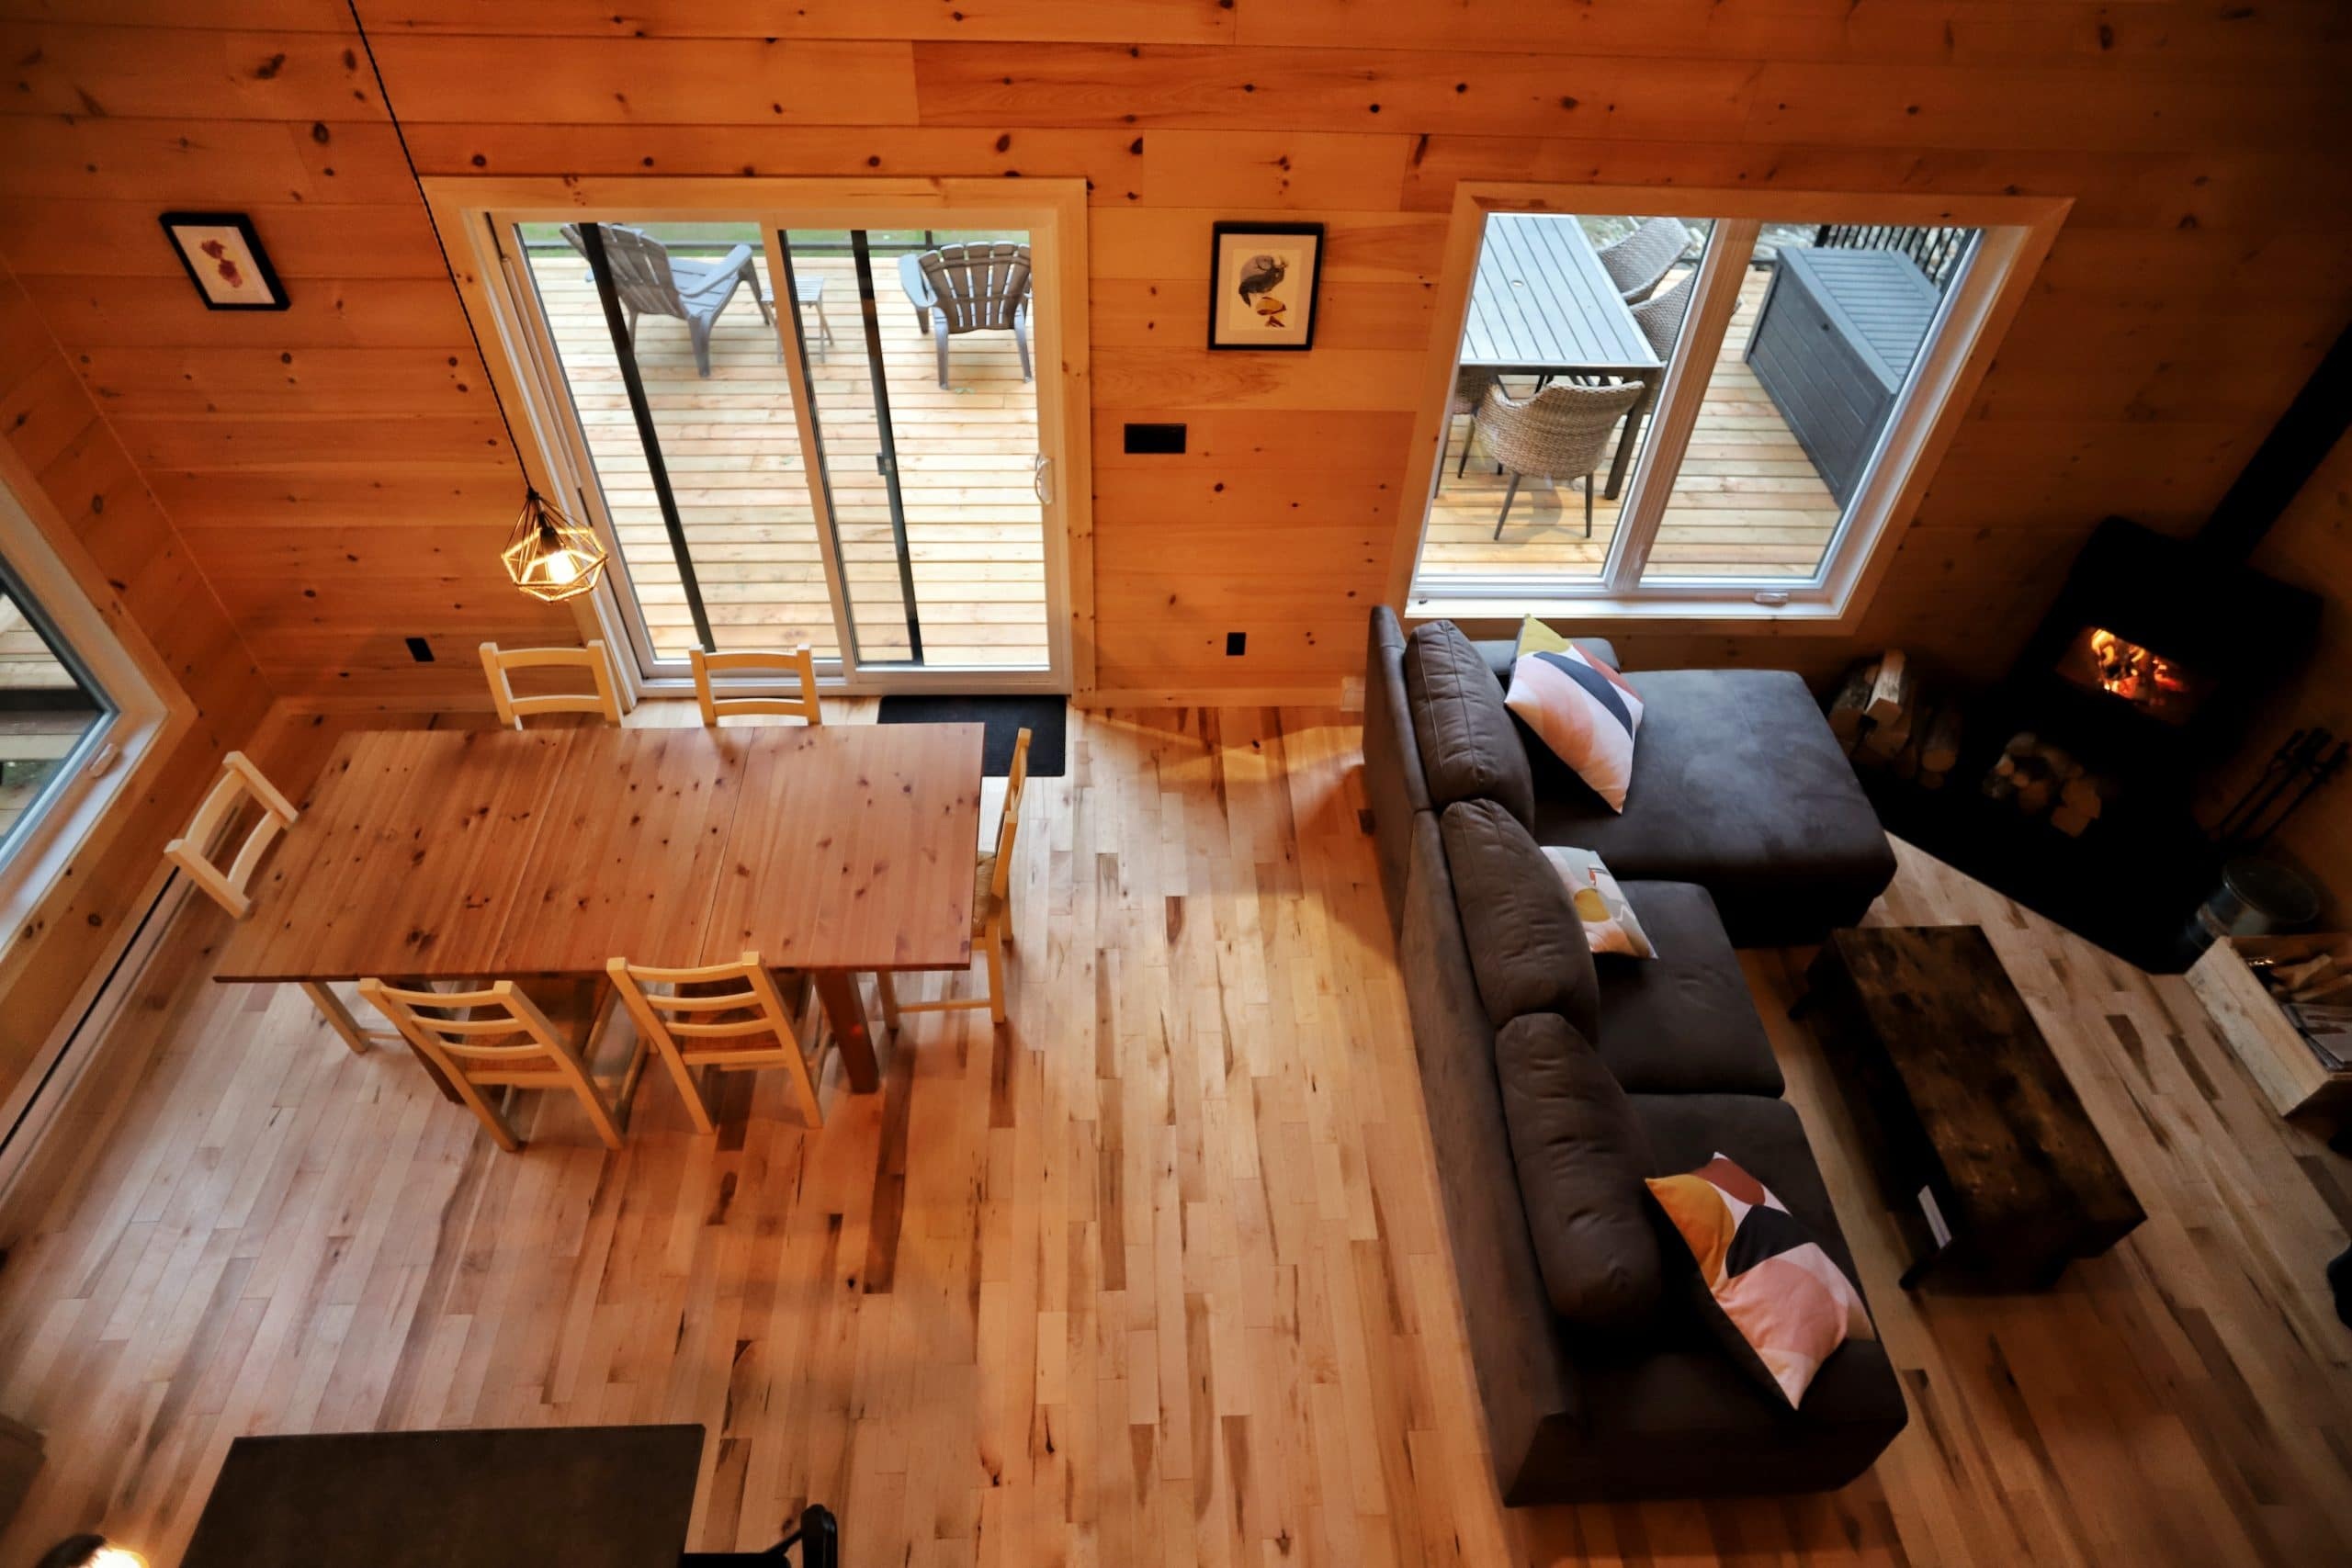 Photos of the chalet, number 31